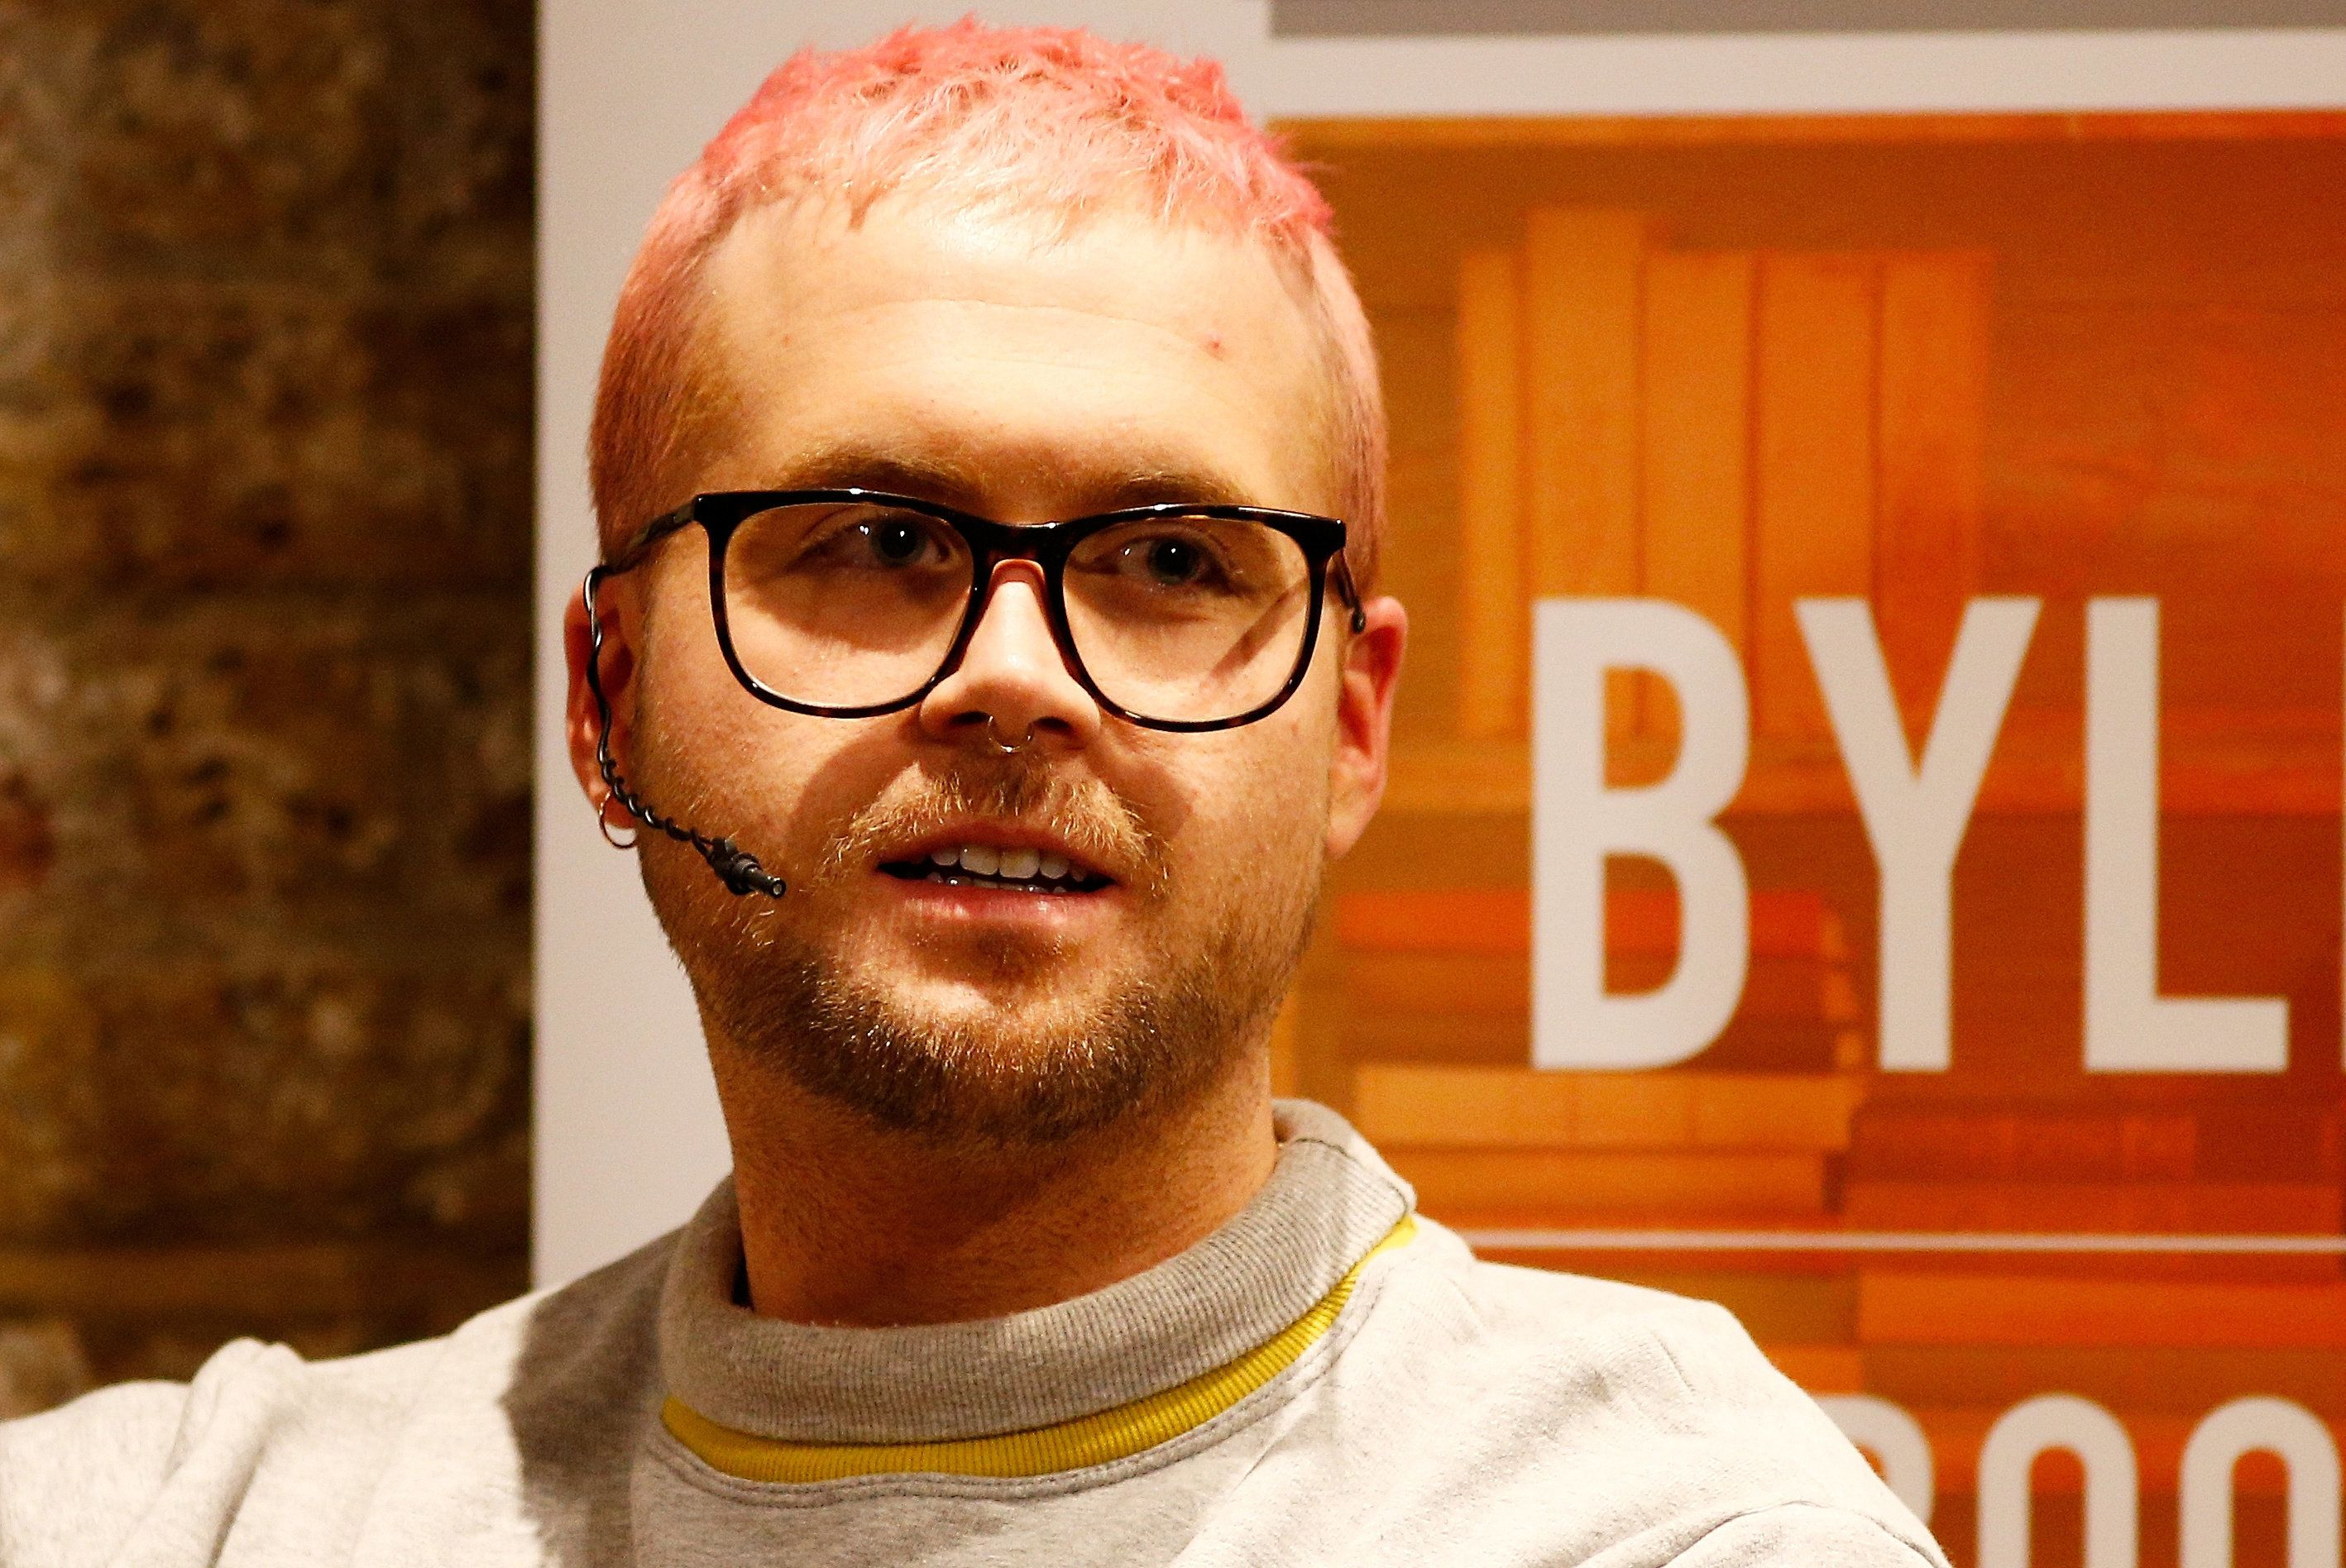 Christopher Wylie, a whistleblower who formerly worked with Cambridge Analytica, the consulting firm that is said to have harvested private information from more than 50 million Facebook users, speaks at the Frontline Club in London, Britain, March 20, 2018. REUTERS/Henry Nicholls